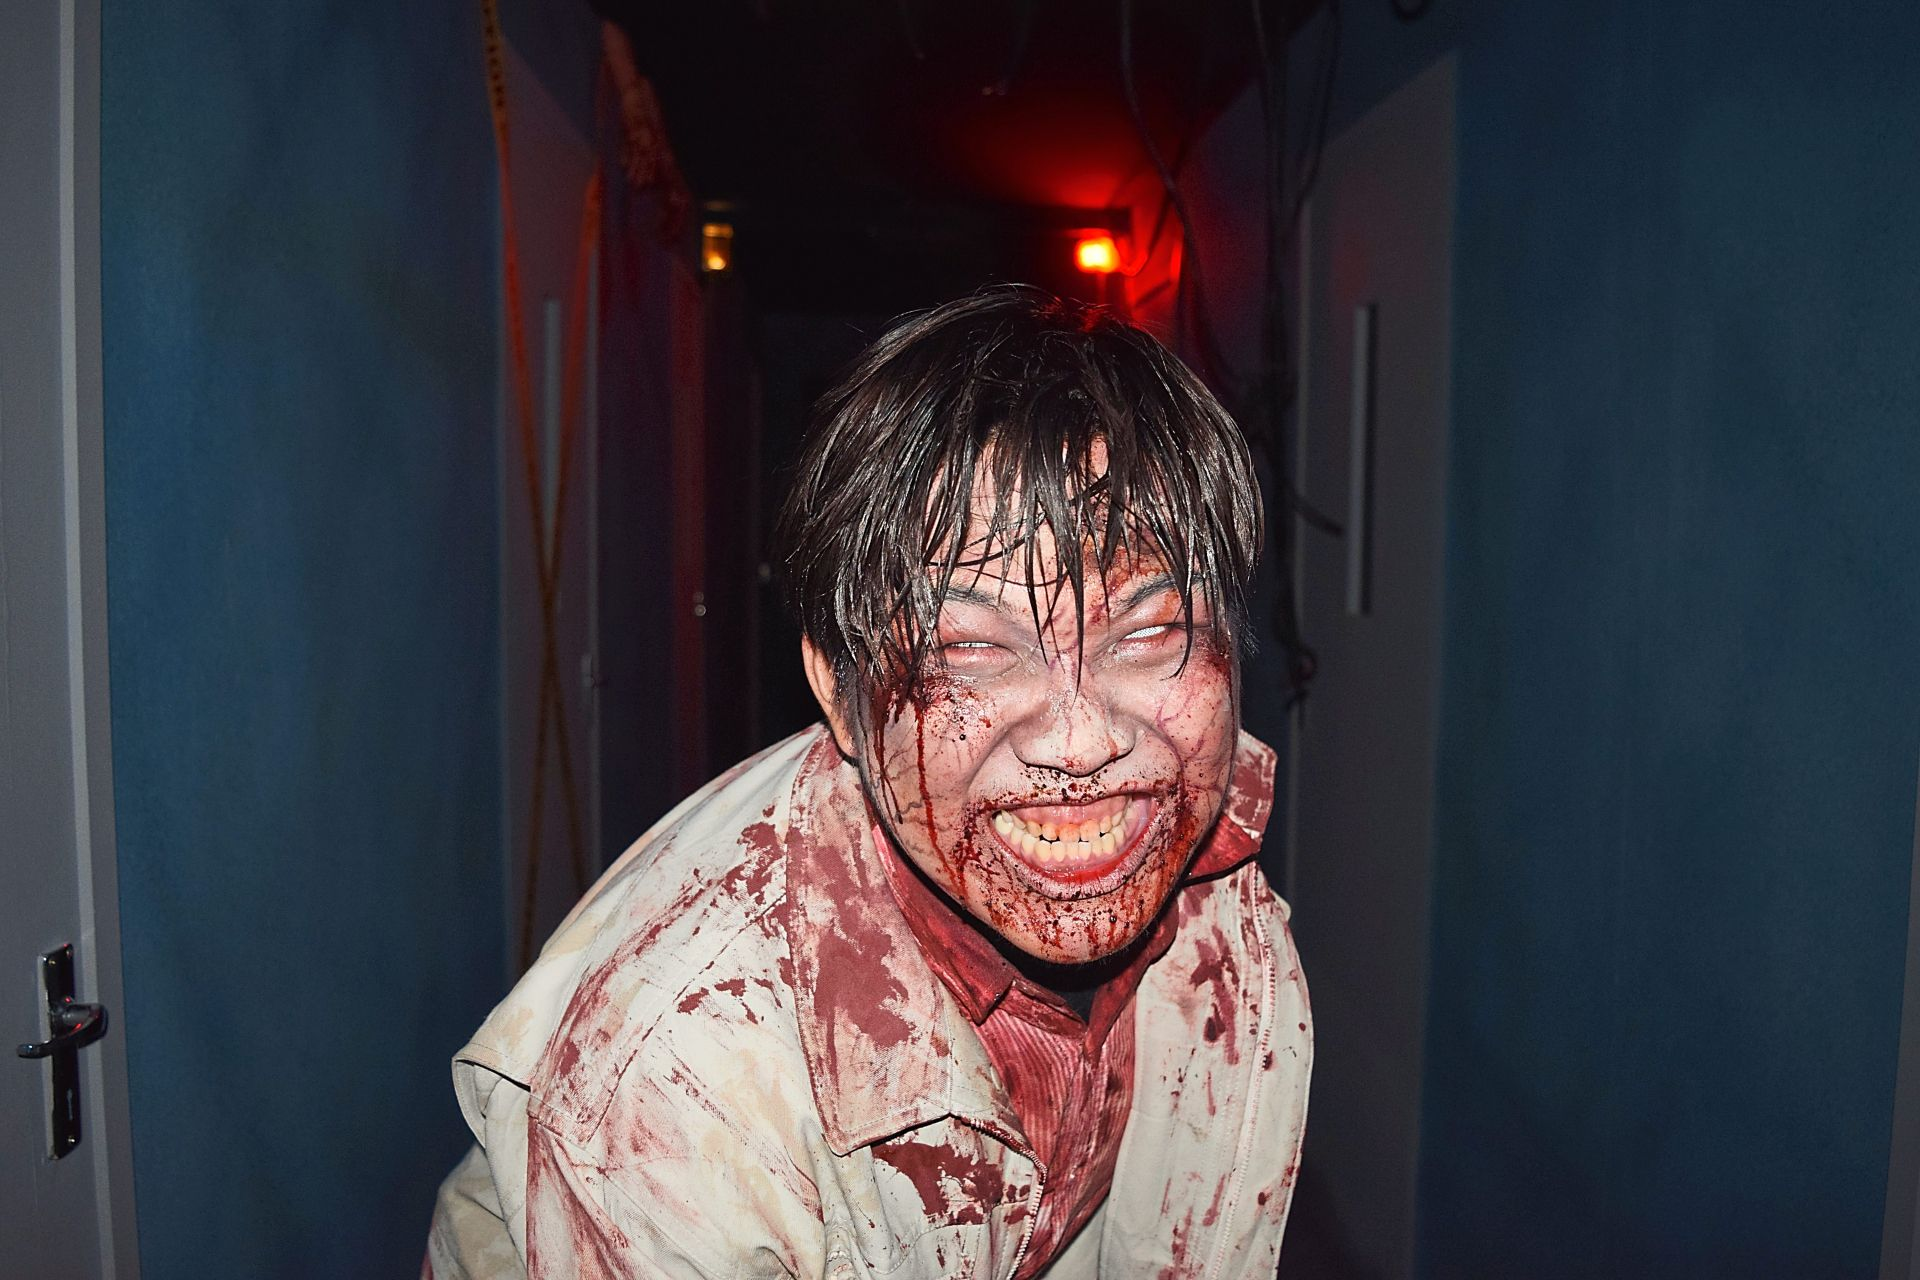 Take a ride on the Train To Busan horror house experience